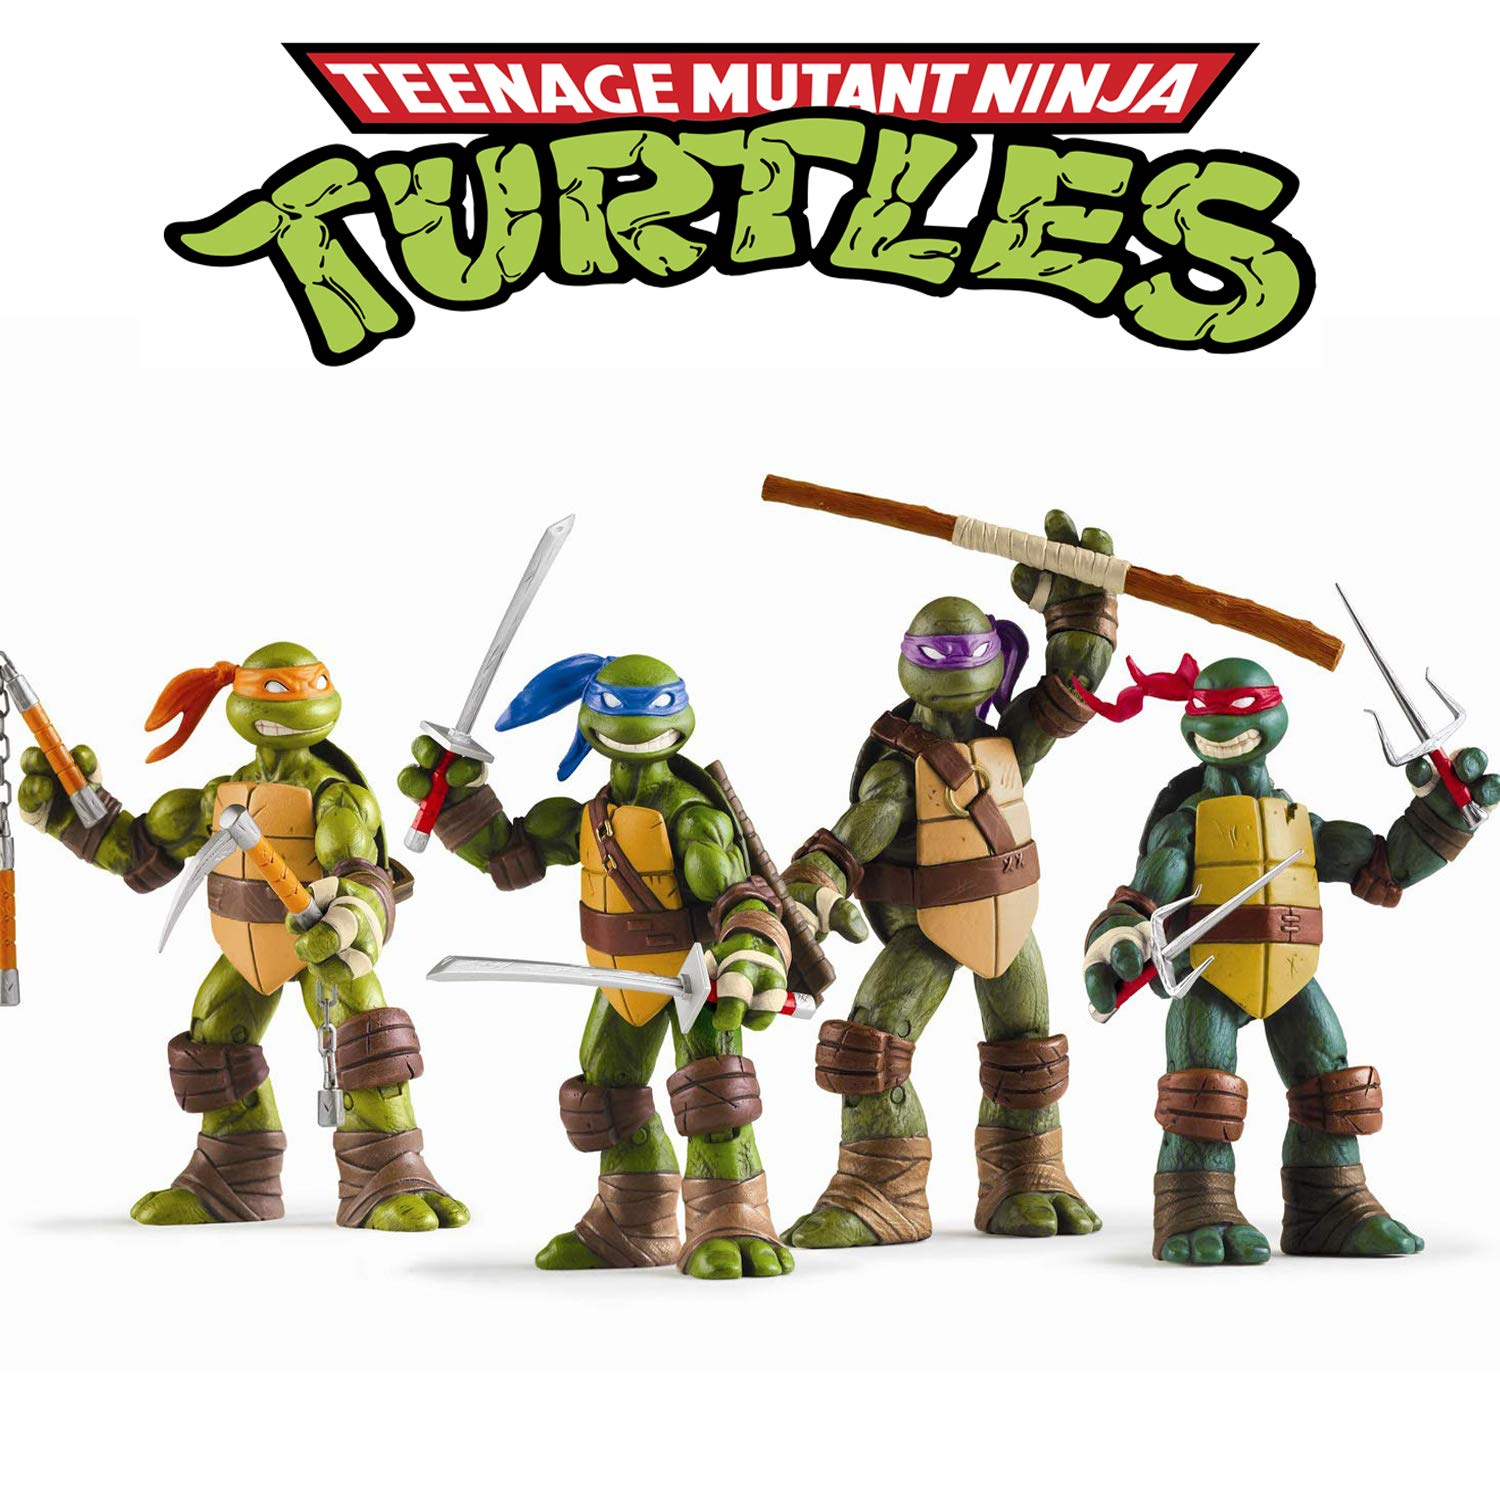 Vitadan Ninja Turtles 4 PCS Set - Teenage Mutant Ninja Turtles Action Figure - TMNT Action Figures - Ninja Turtles Toy Set - Ninja Turtles Action ...